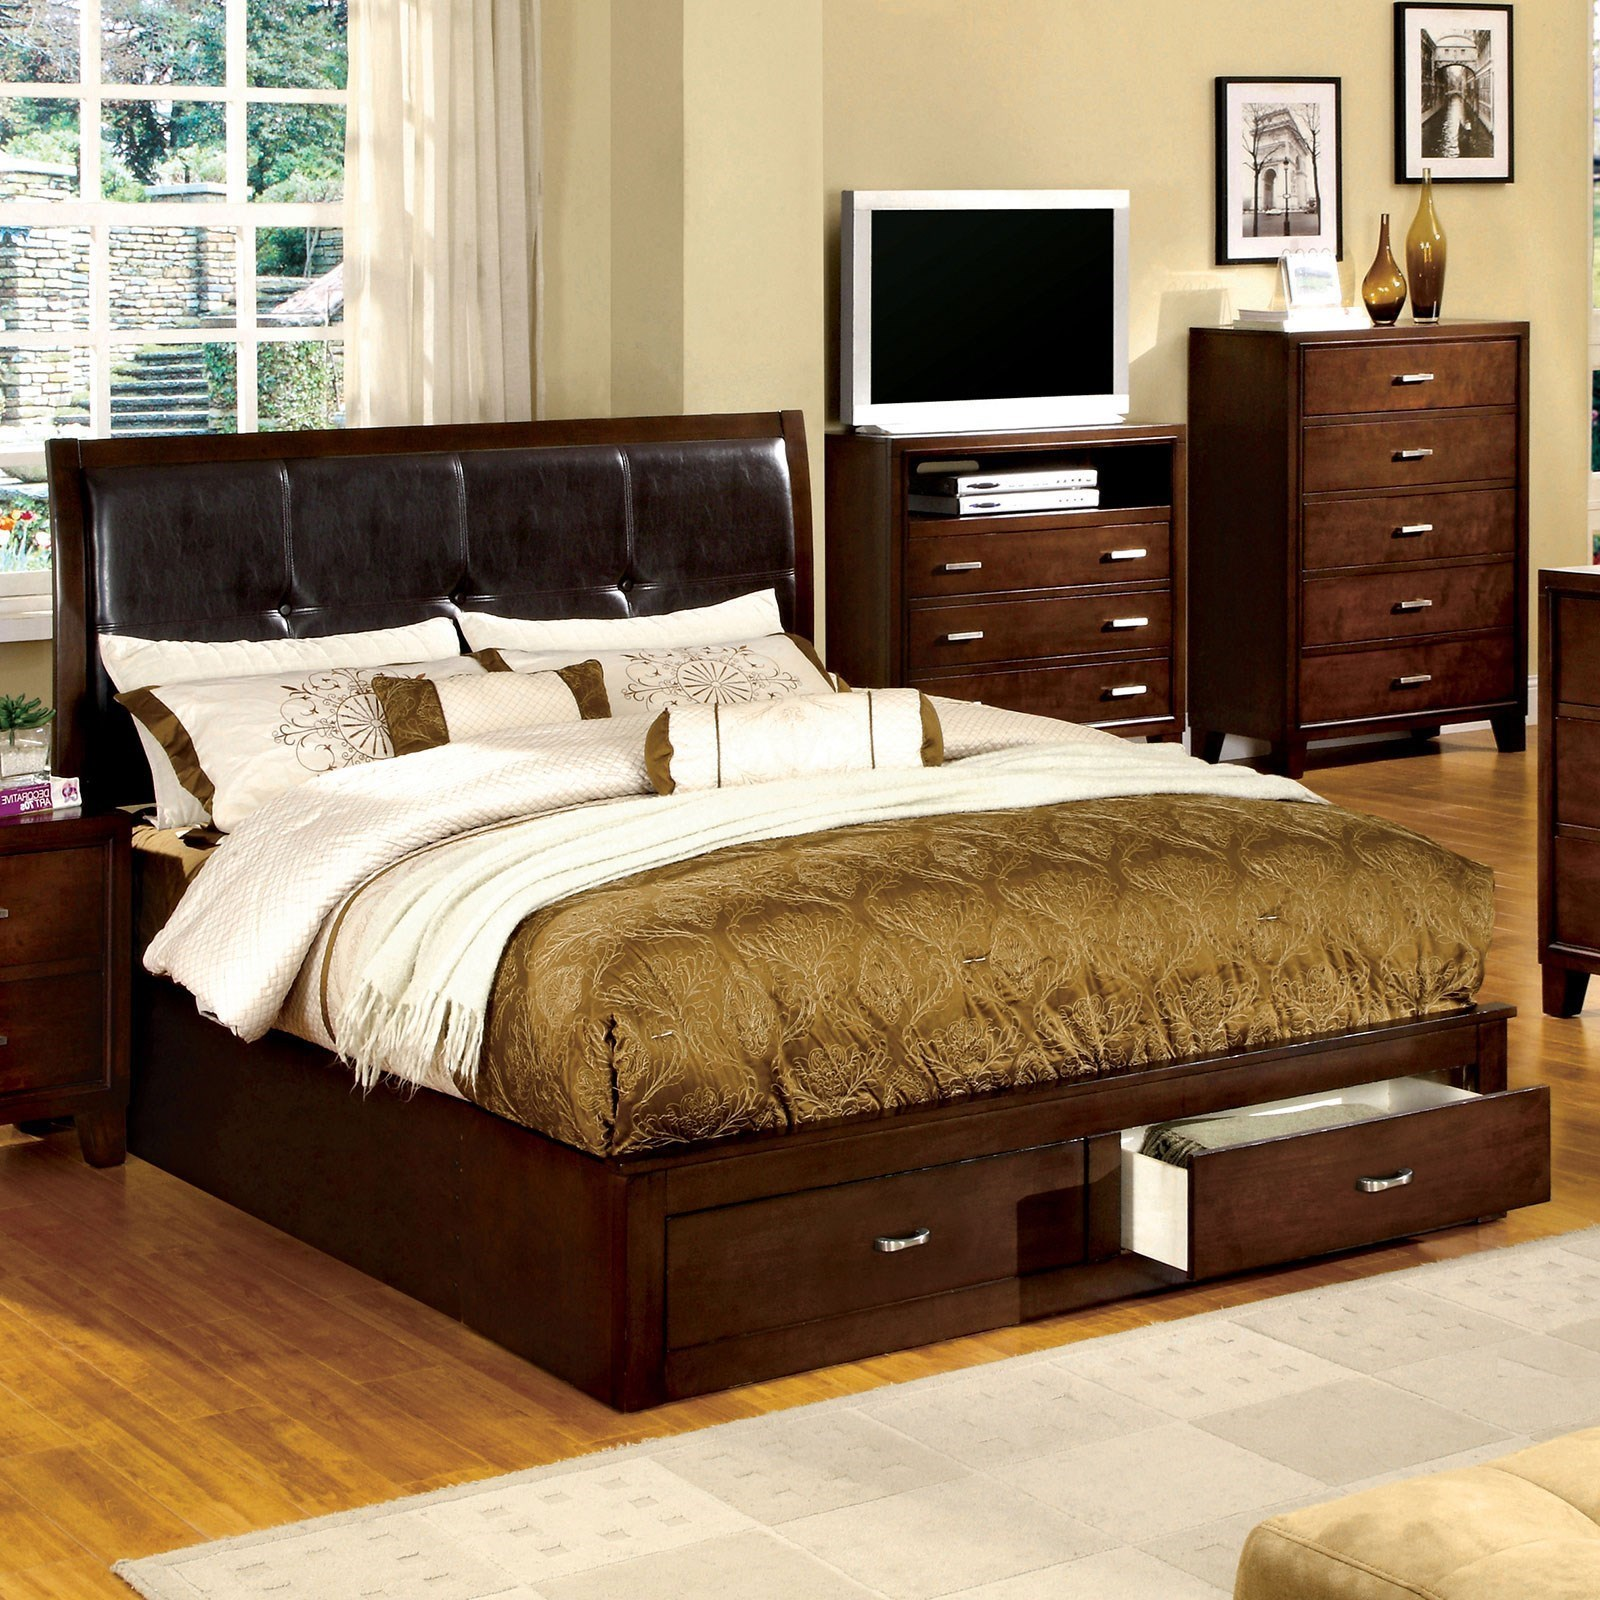 Enrico III King Upholstered Bed by Furniture of America - FOA at Del Sol Furniture